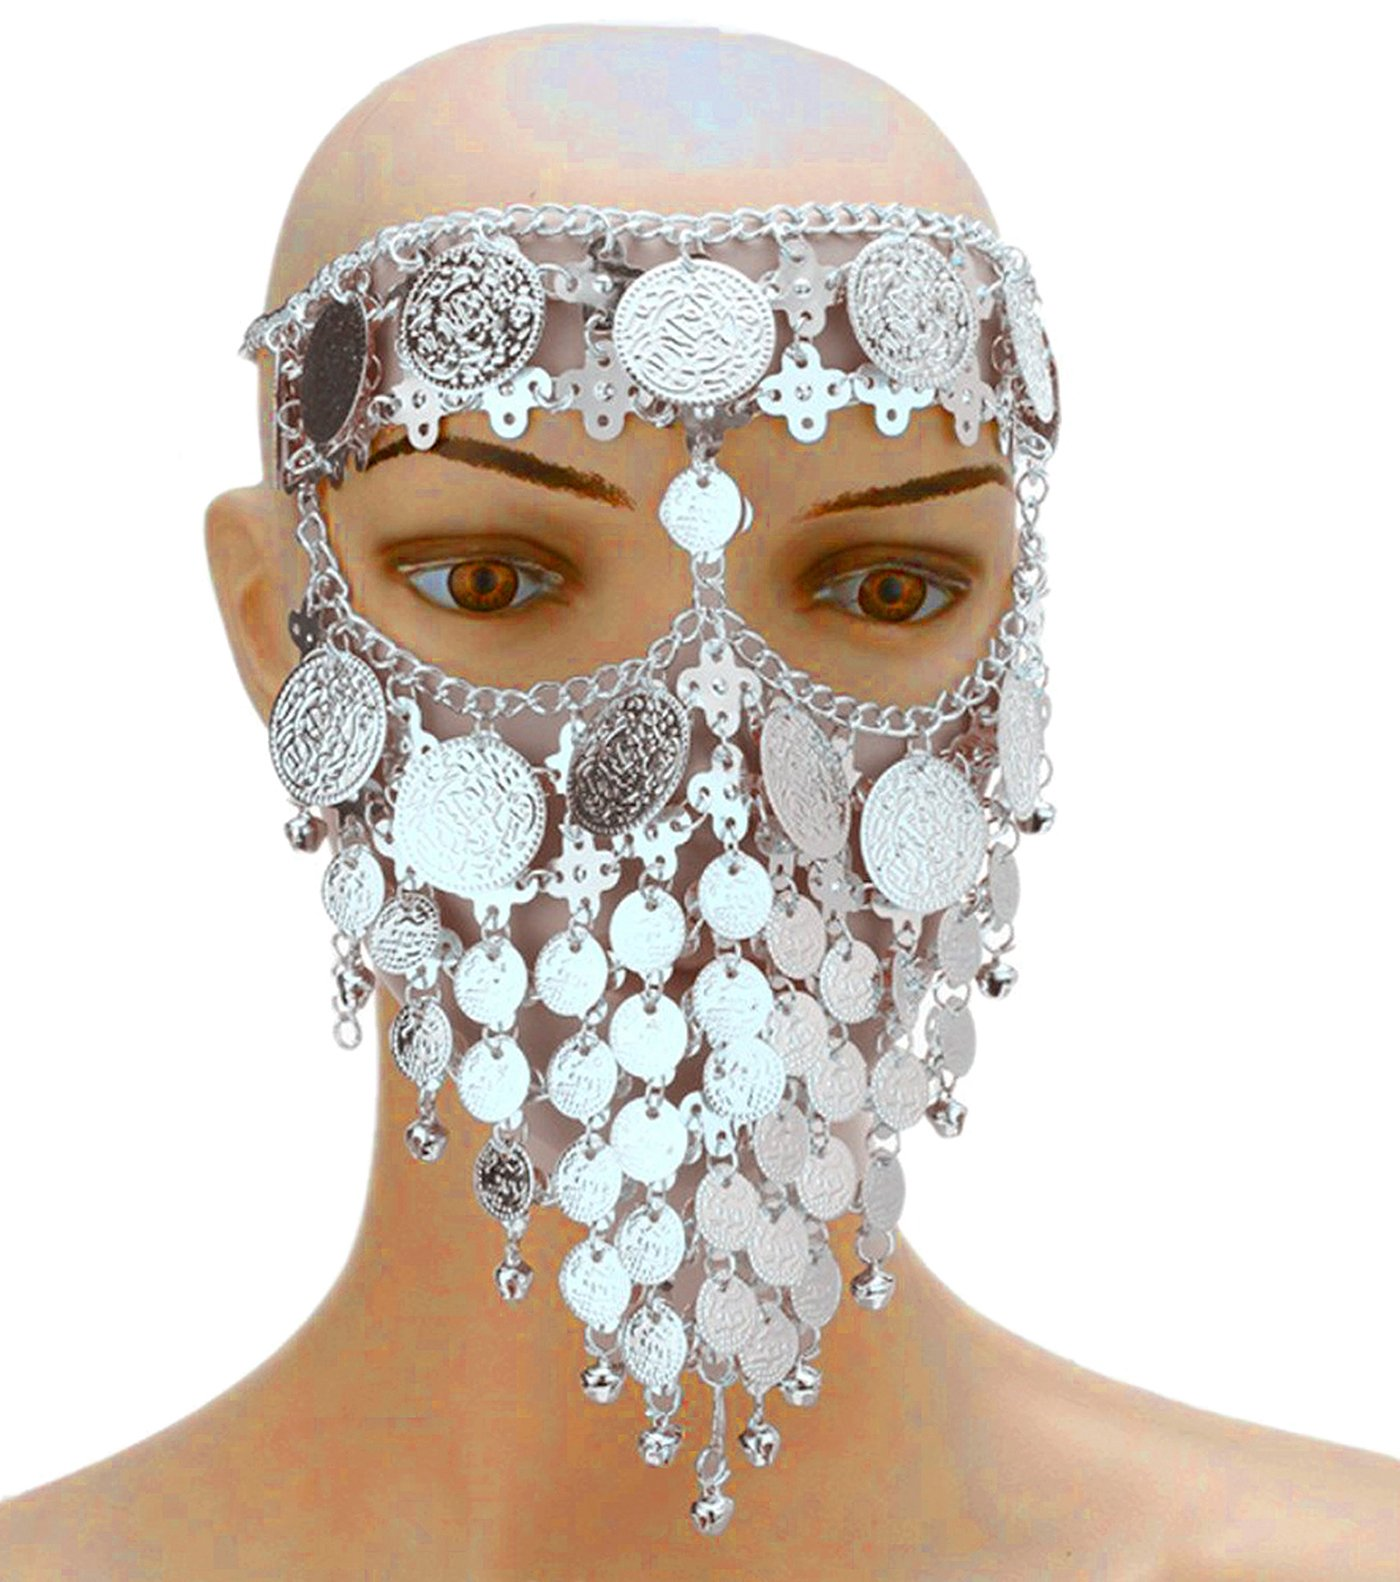 Astage Lady Cosplay Belly Dance Jewelry Coin Veil Halloween Accessories Silver Coin